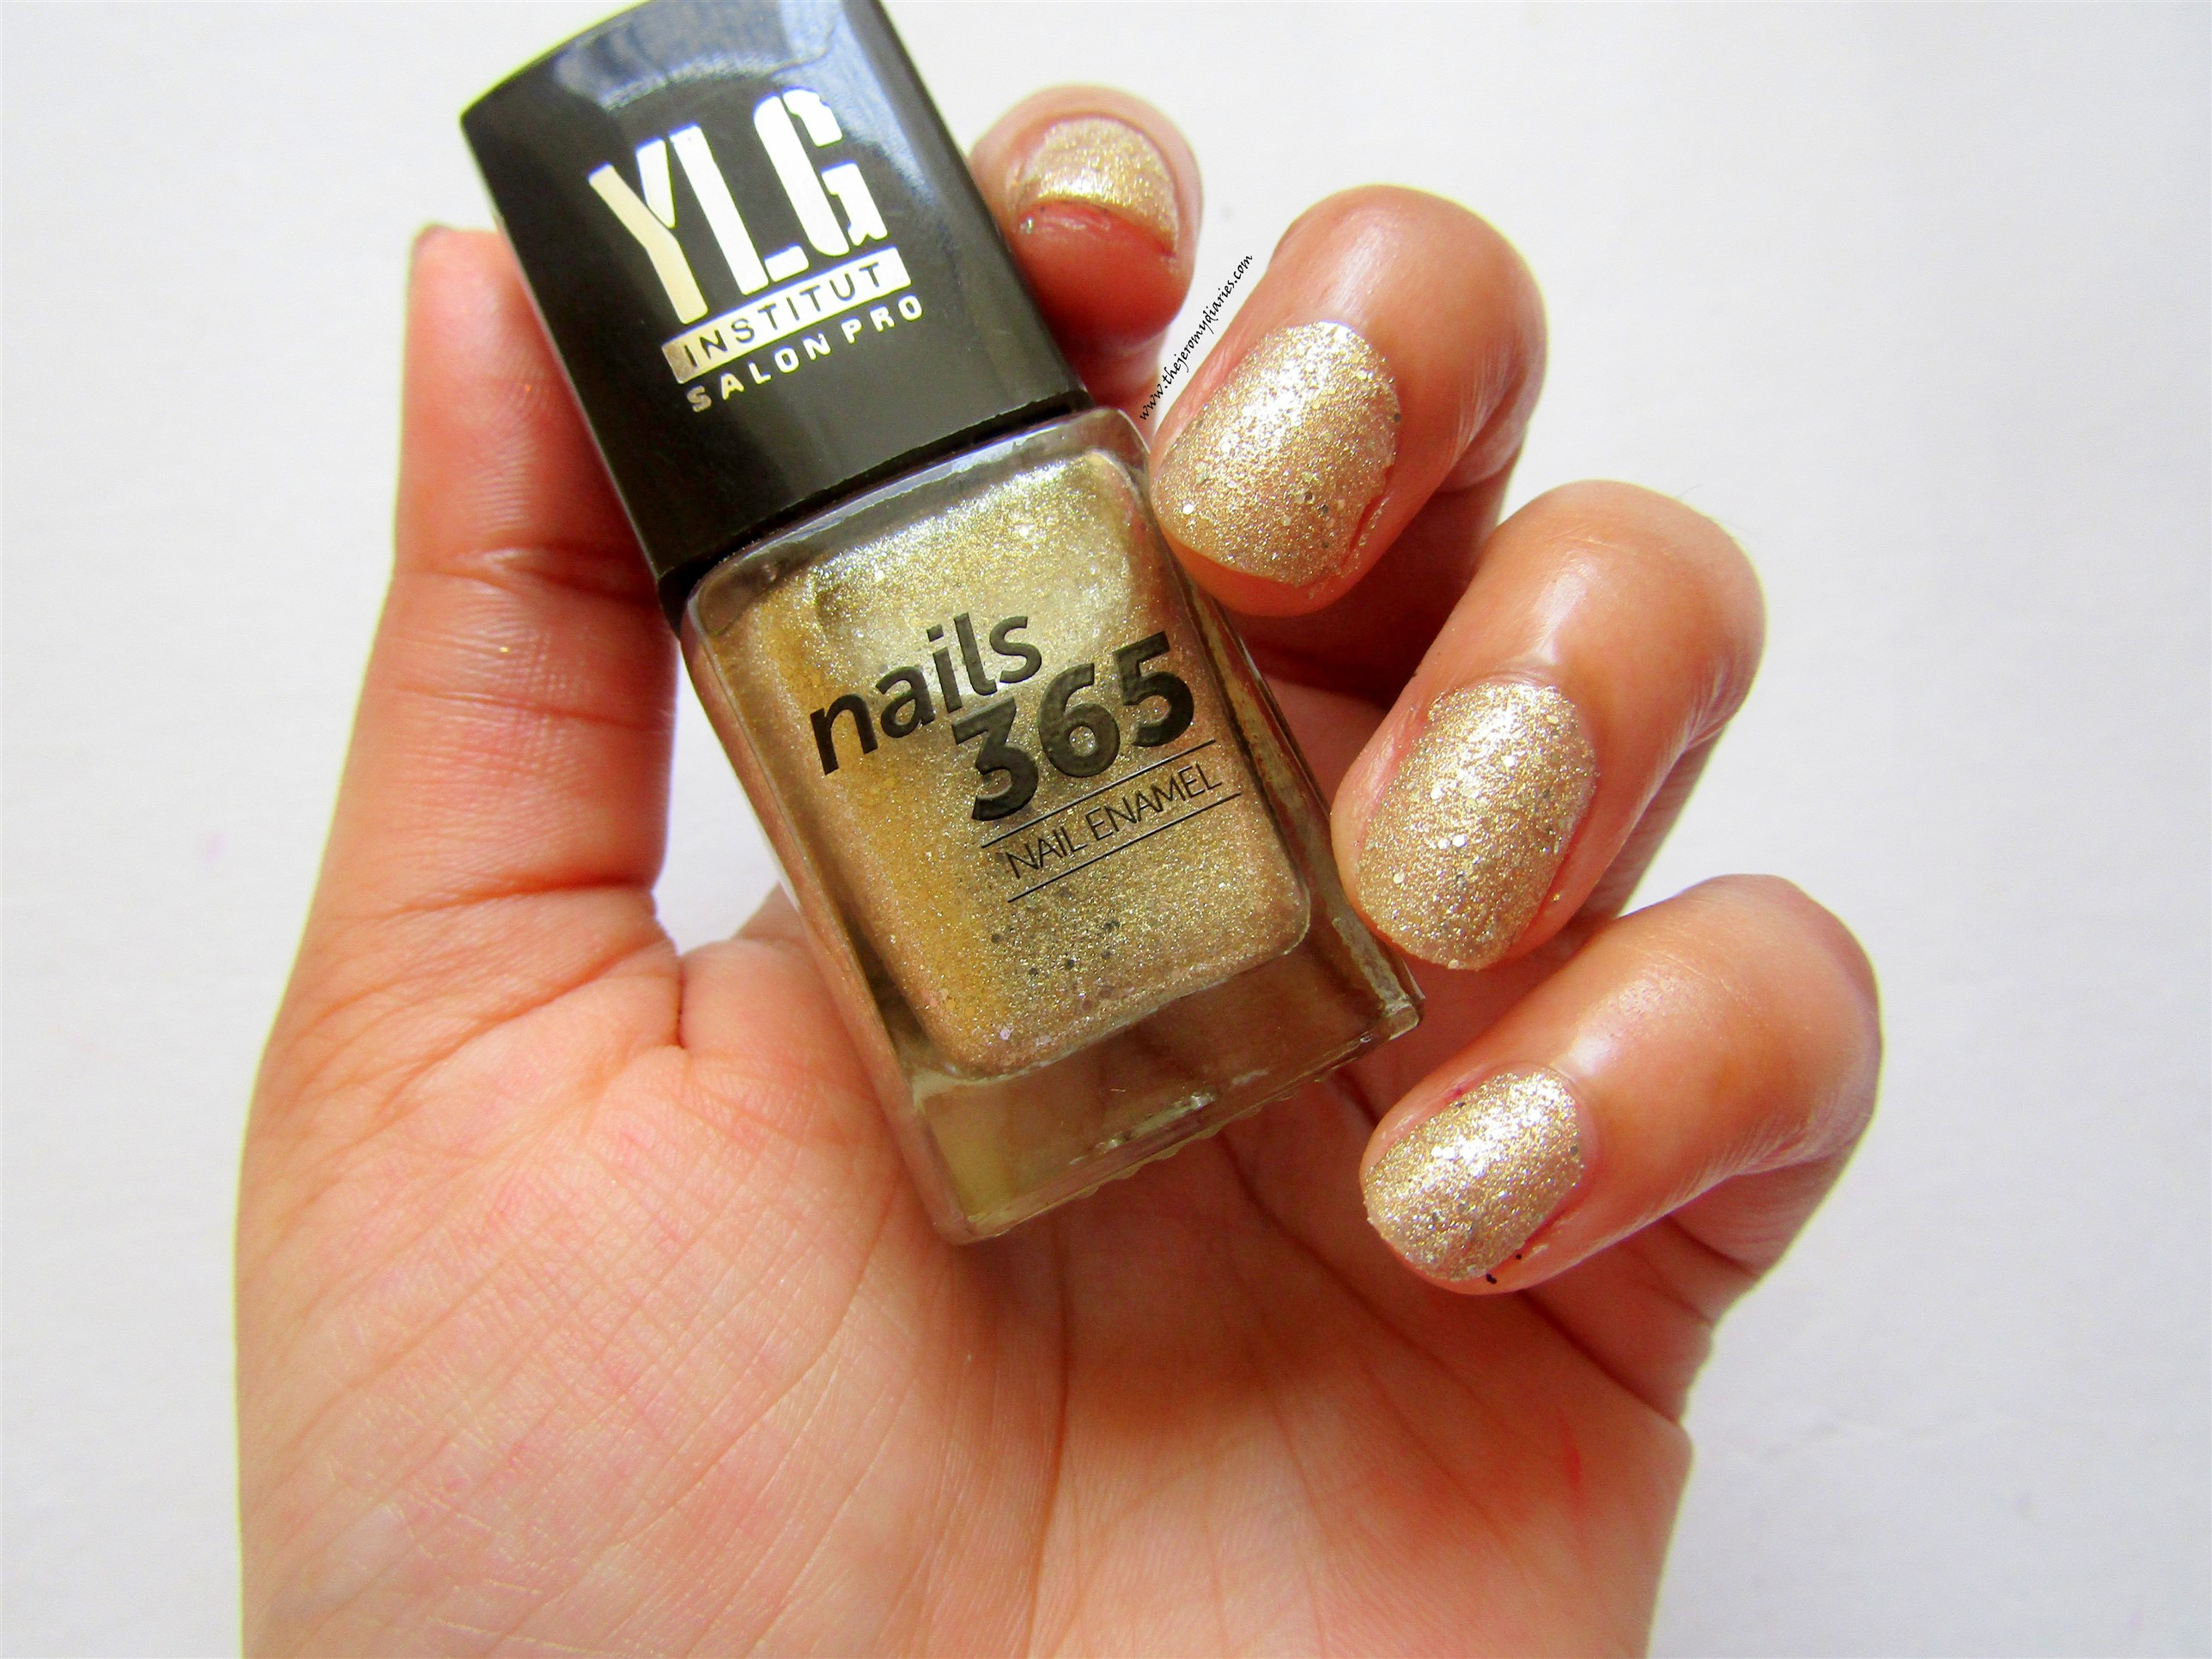 ylg nails 365 silver glitter nail paint swatches the jeromy diaries